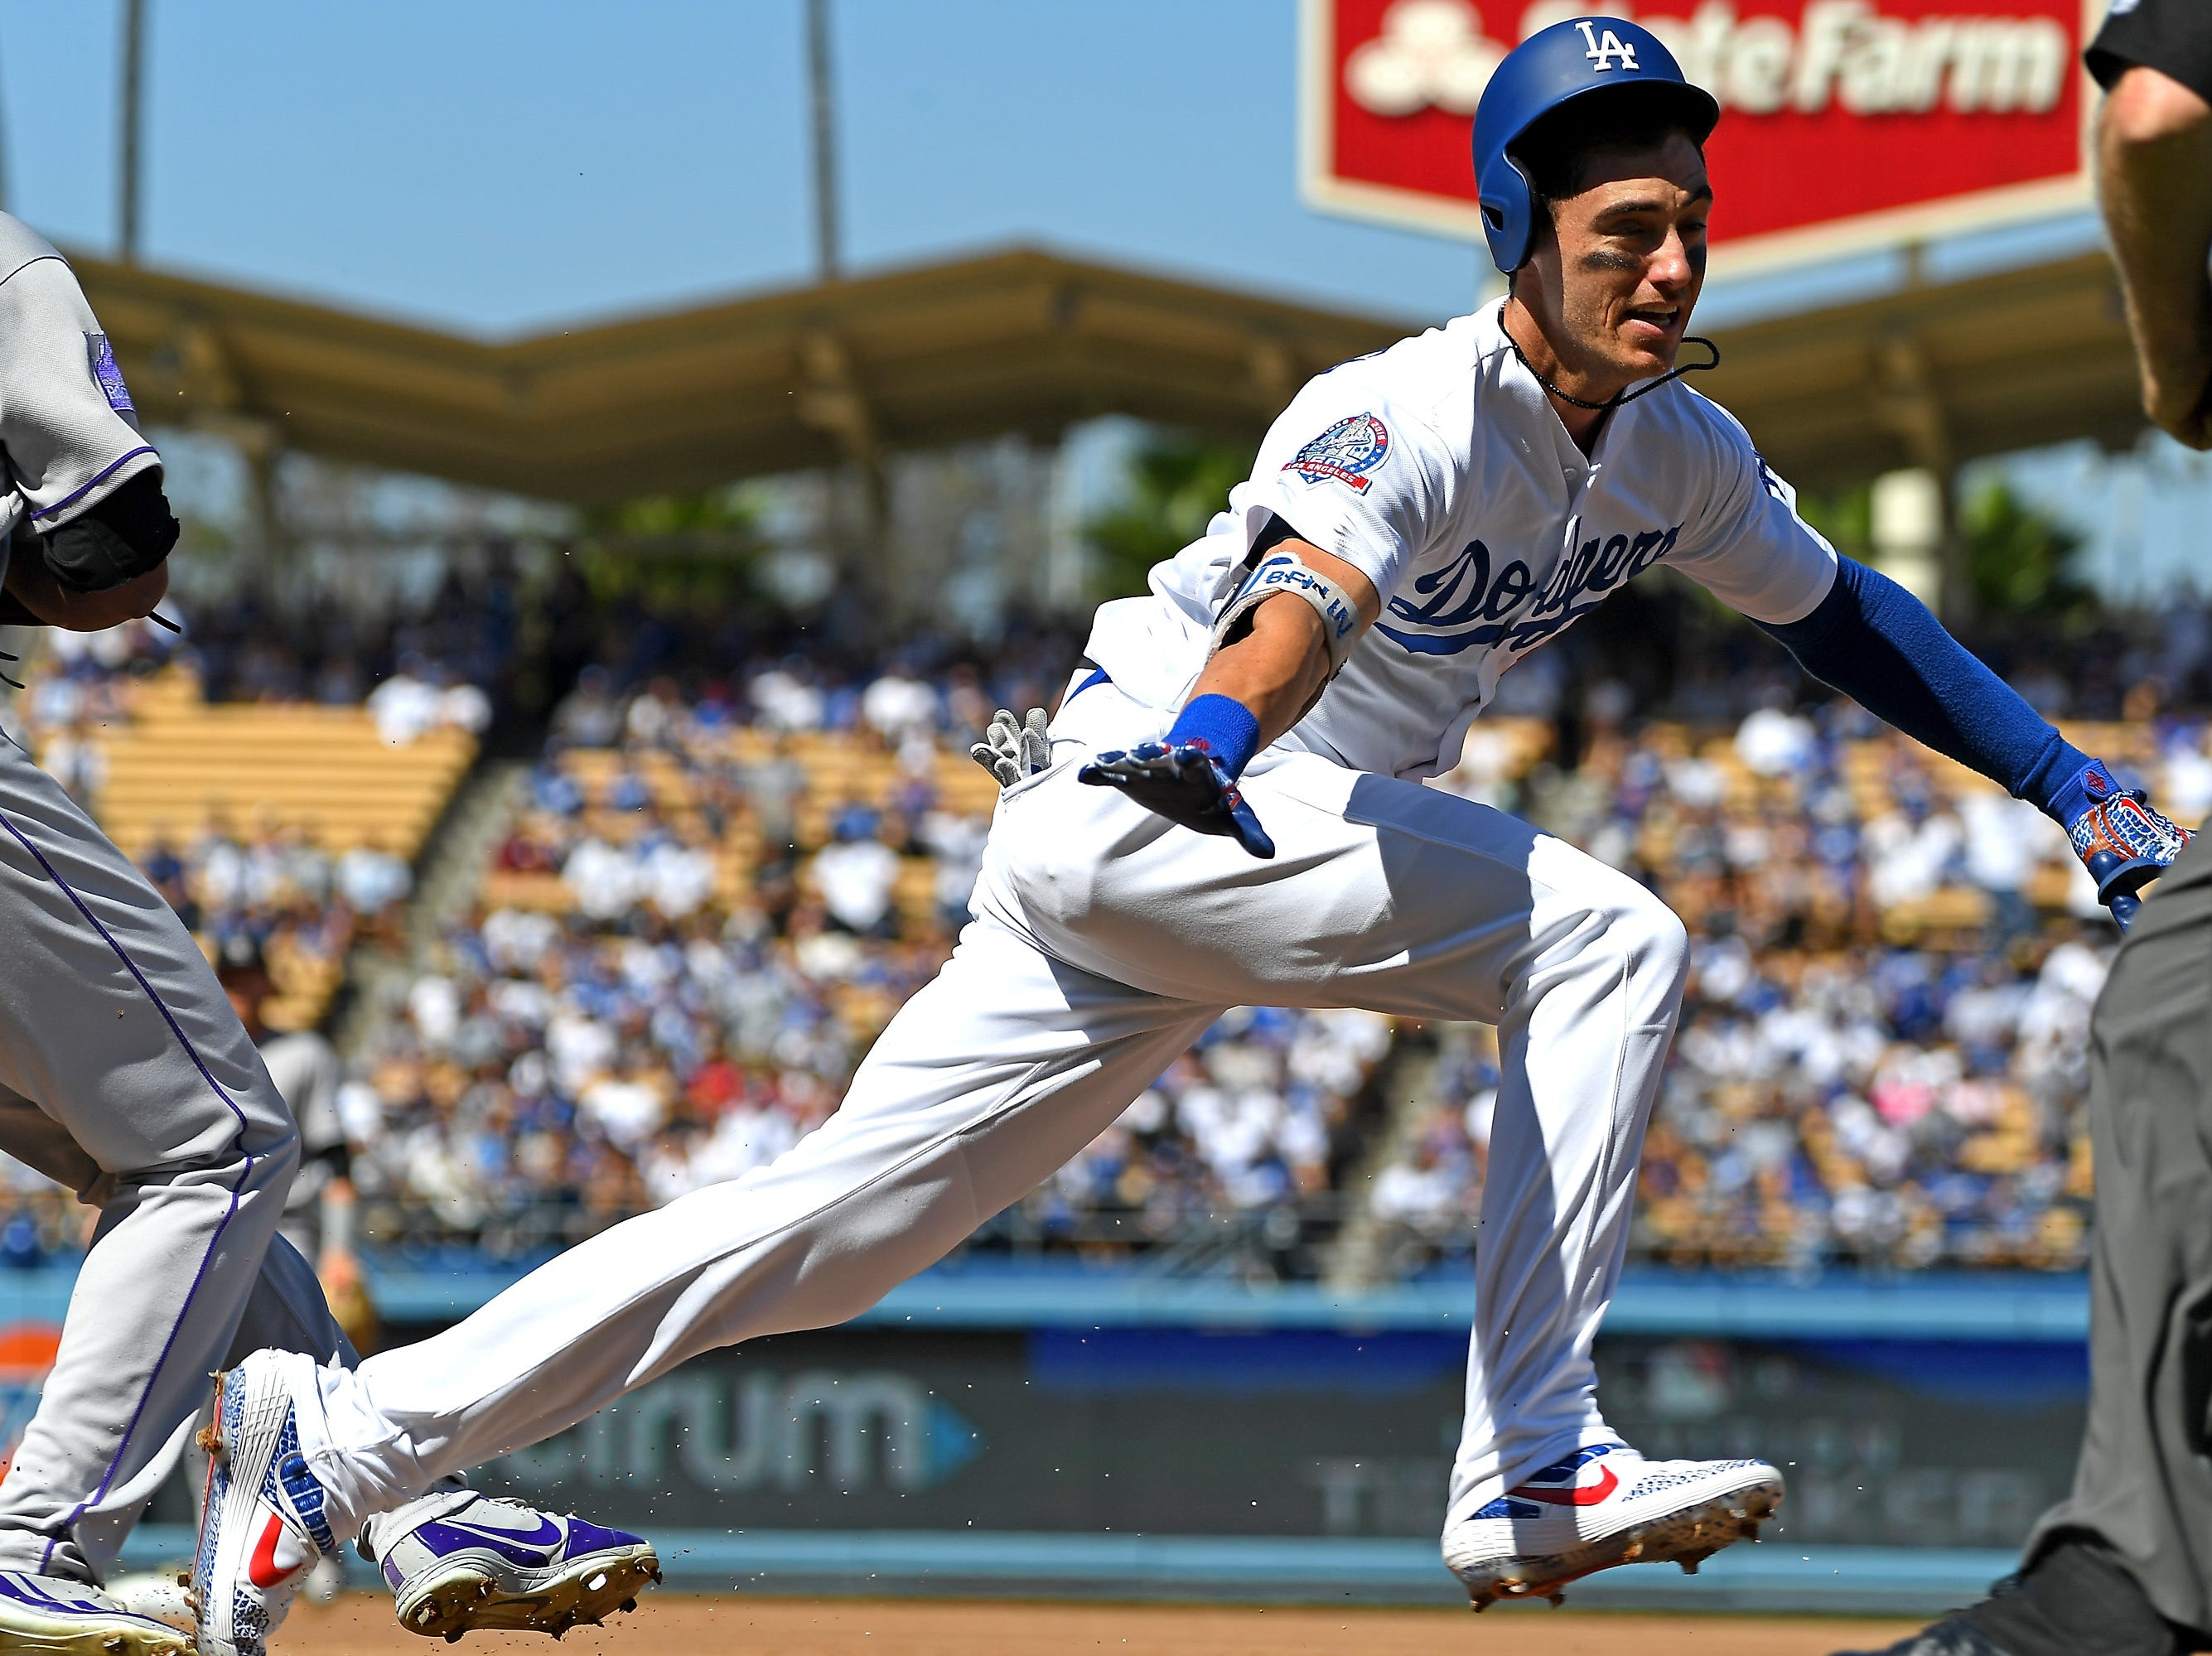 Cody Bellinger is called out at first base in the third inning.